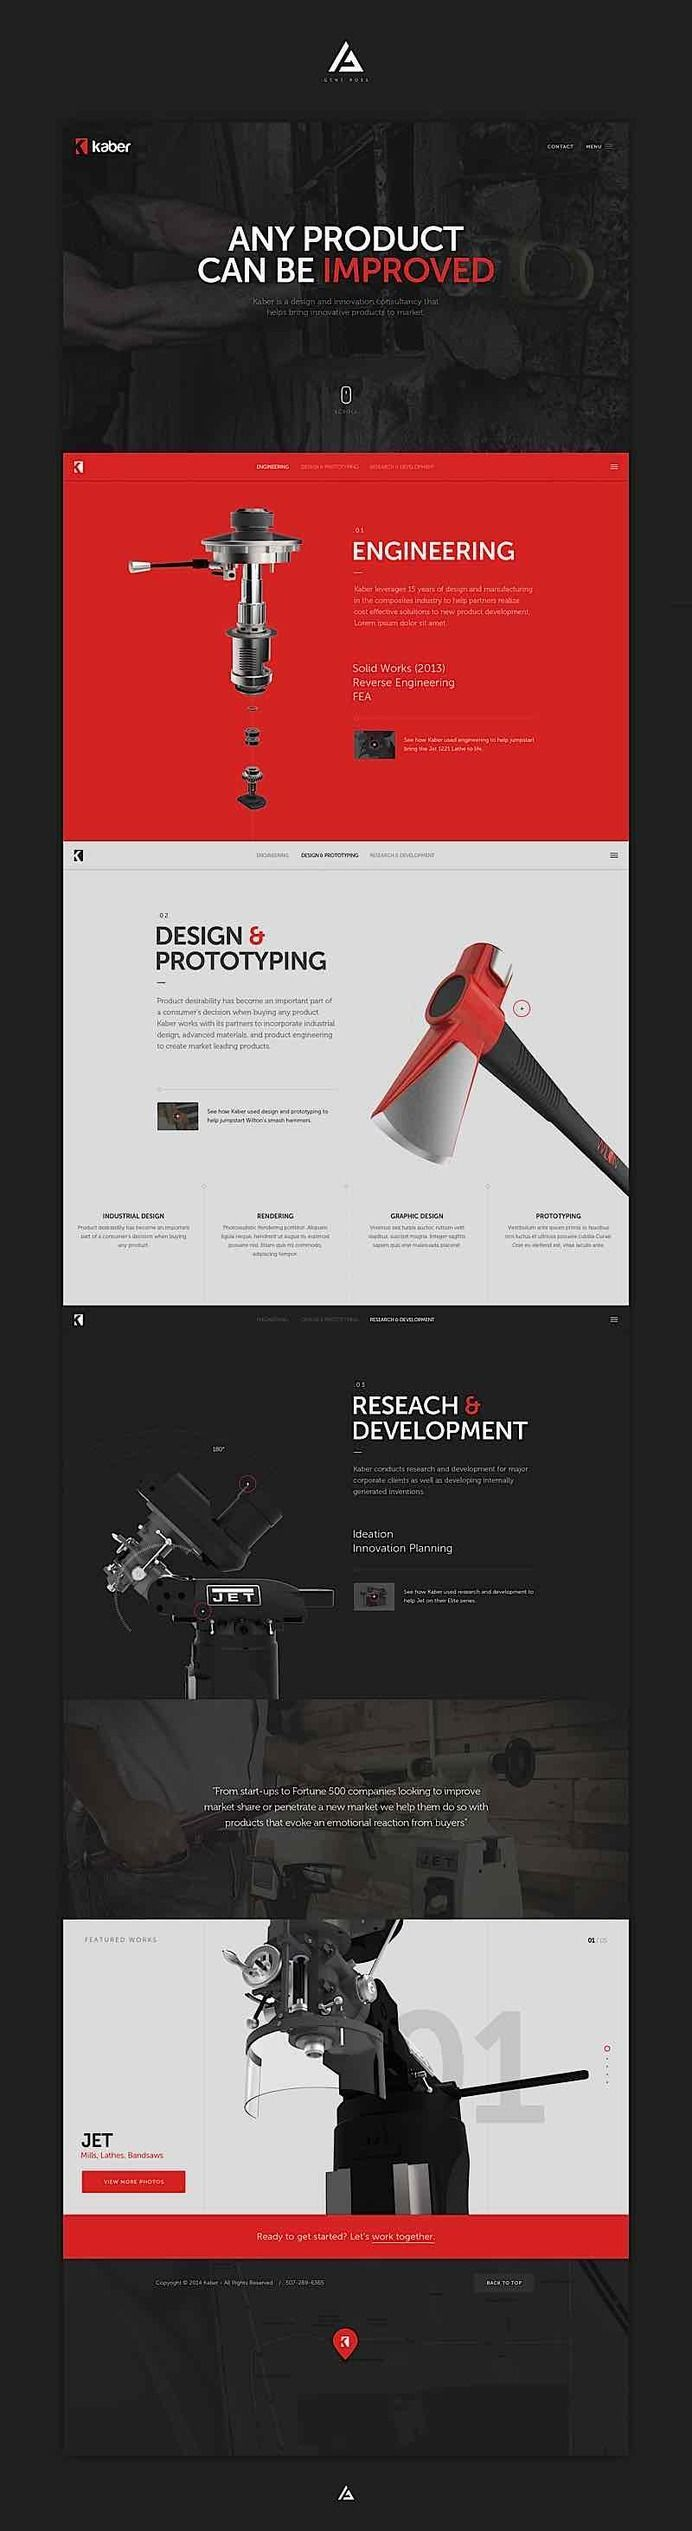 Much Whitespace Best Practise Selling Colours White Red Black Modern Typo Premium Imagery Clean Web Design Inspiration Clean Web Design Web Layout Design